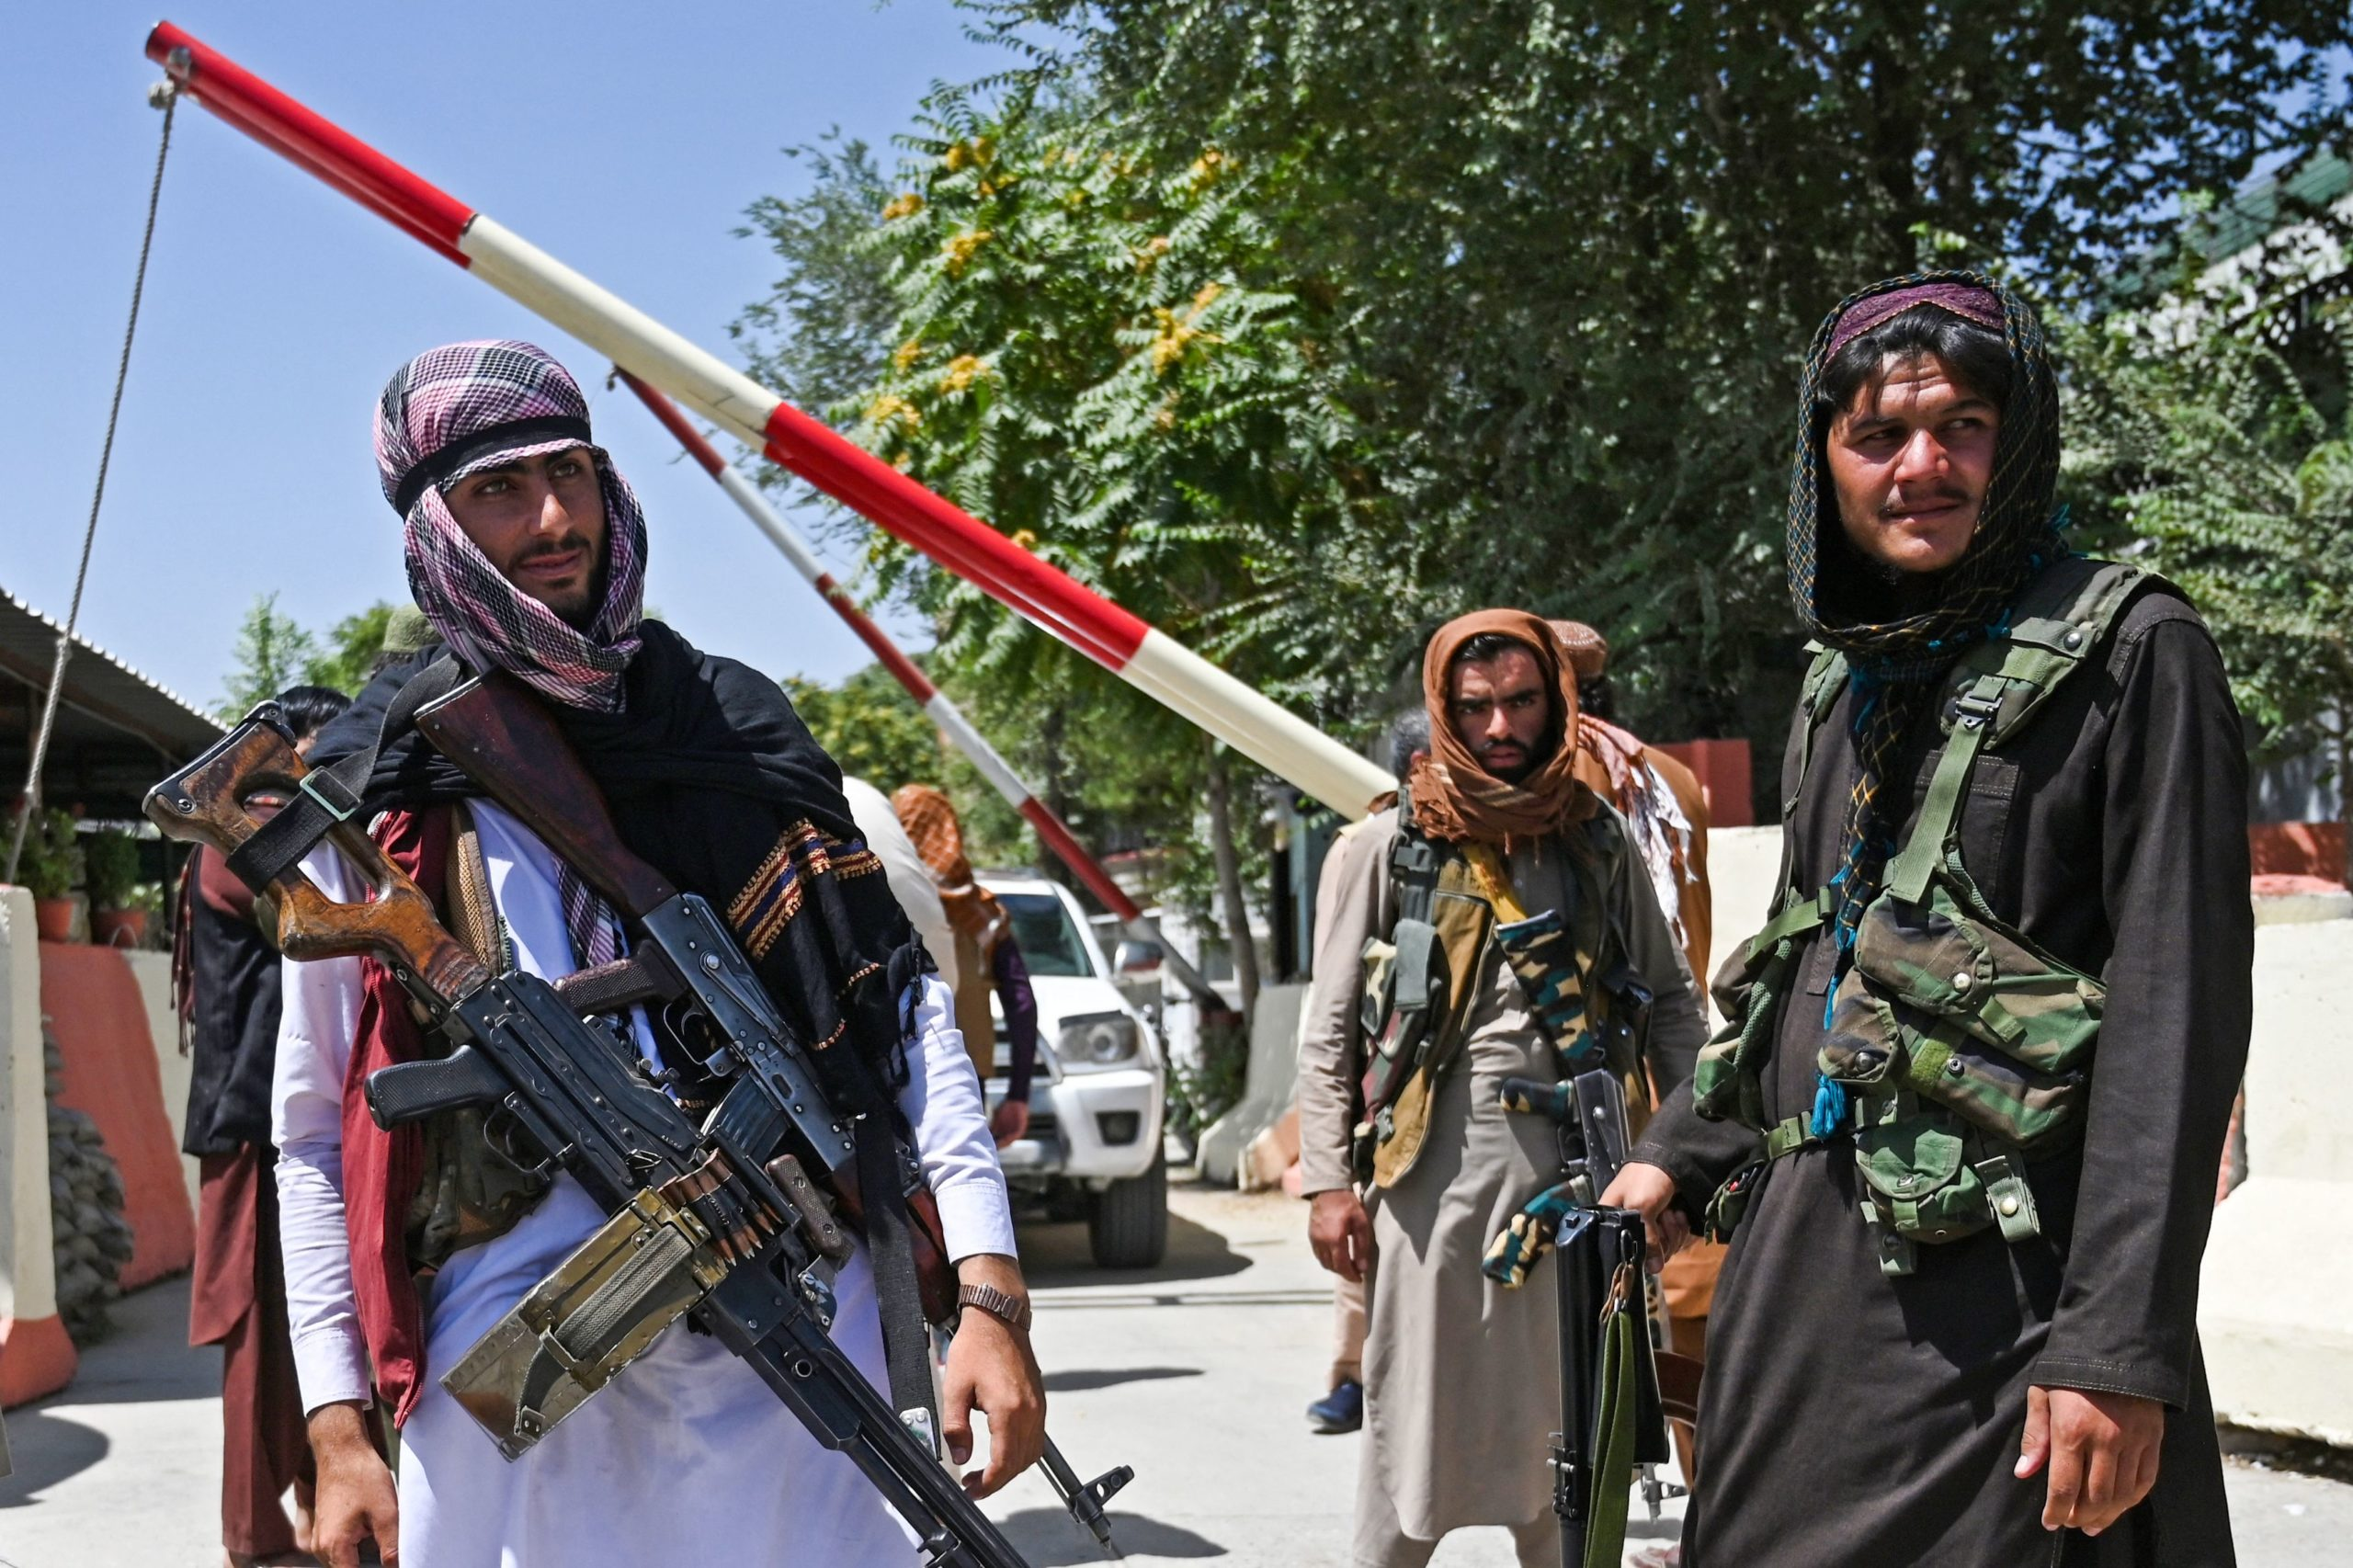 Taliban fighters stand guard along a roadside near the Zanbaq Square in Kabul on August 16, 2021, after a stunningly swift end to Afghanistan's 20-year war, as thousands of people mobbed the city's airport trying to flee the group's feared hardline brand of Islamist rule. (Photo by WAKIL KOHSAR/AFP via Getty Images)